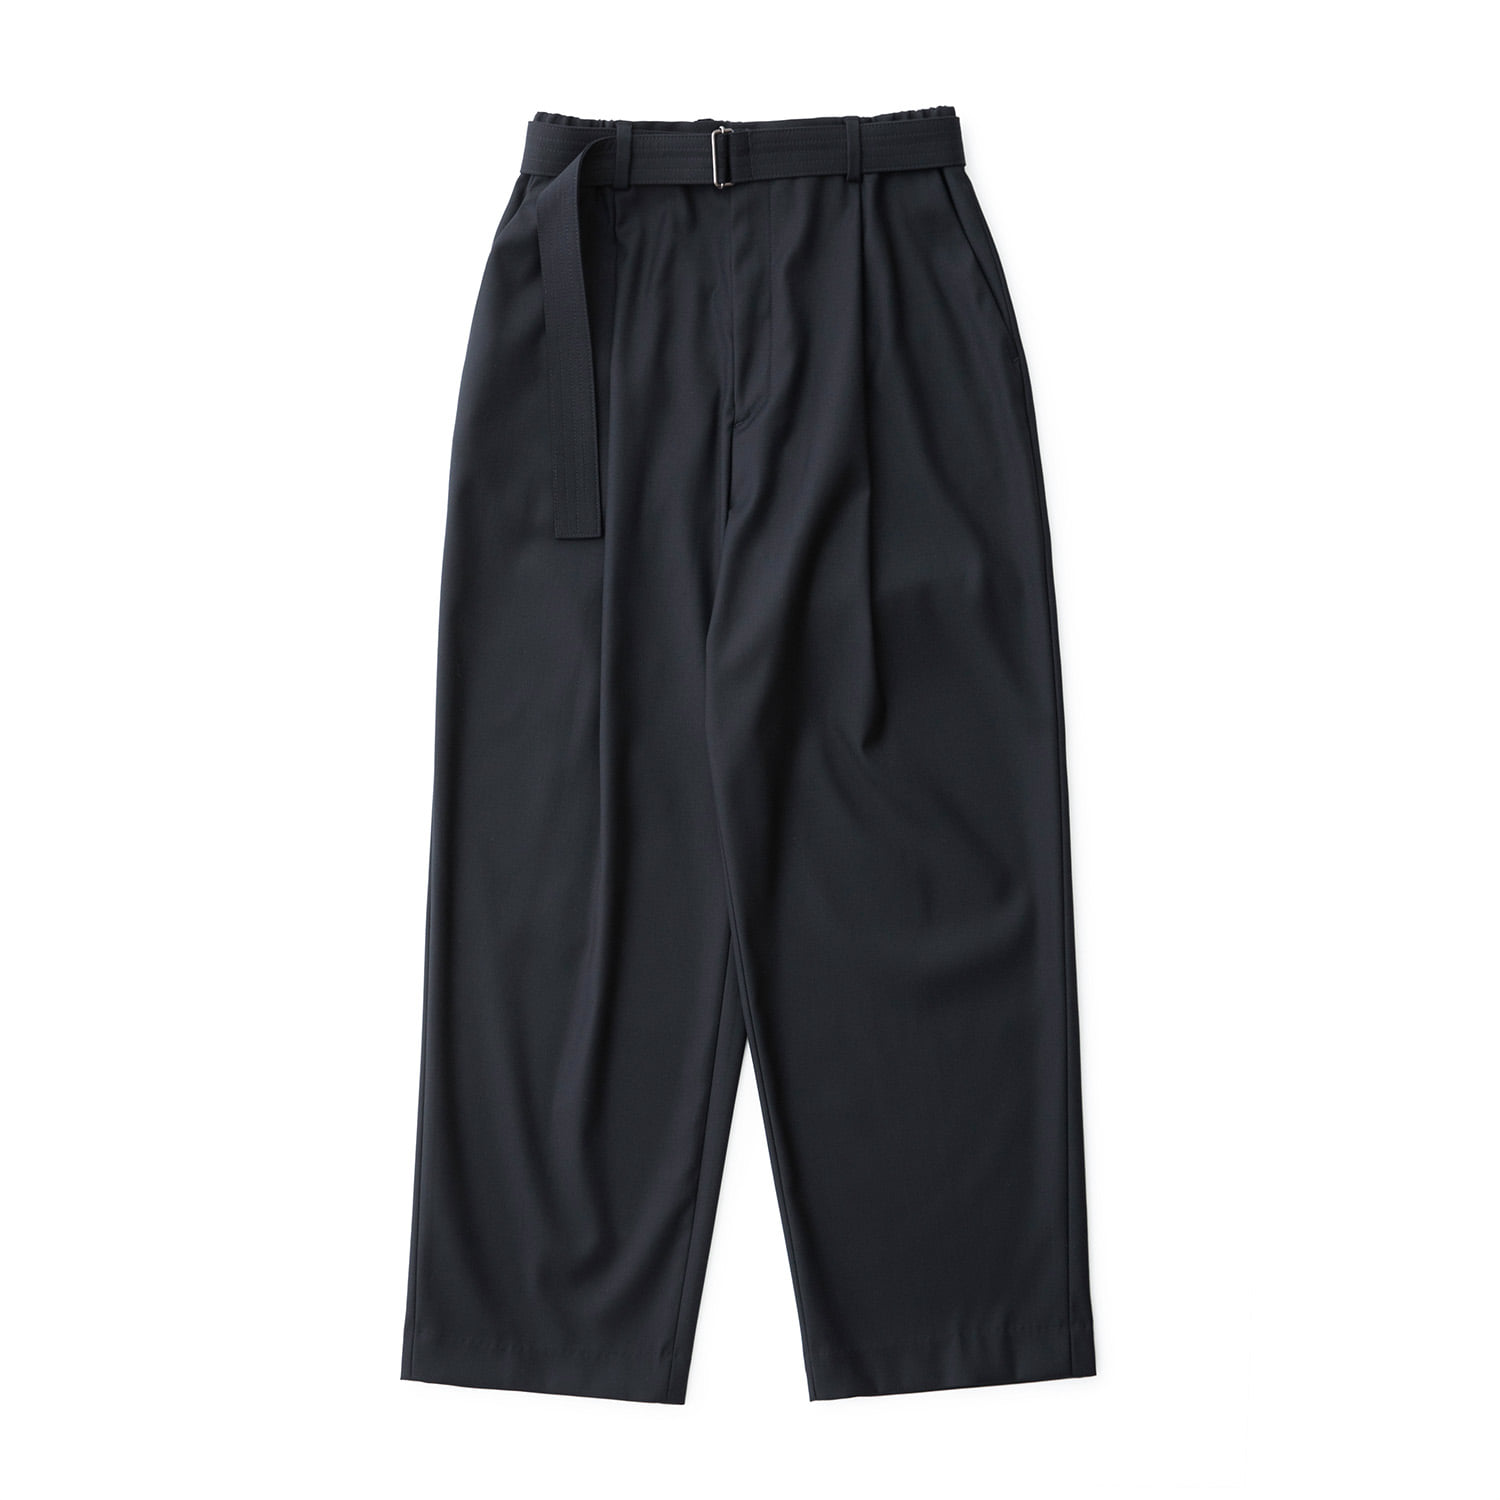 21SS Calm Banded Pants (Navy)